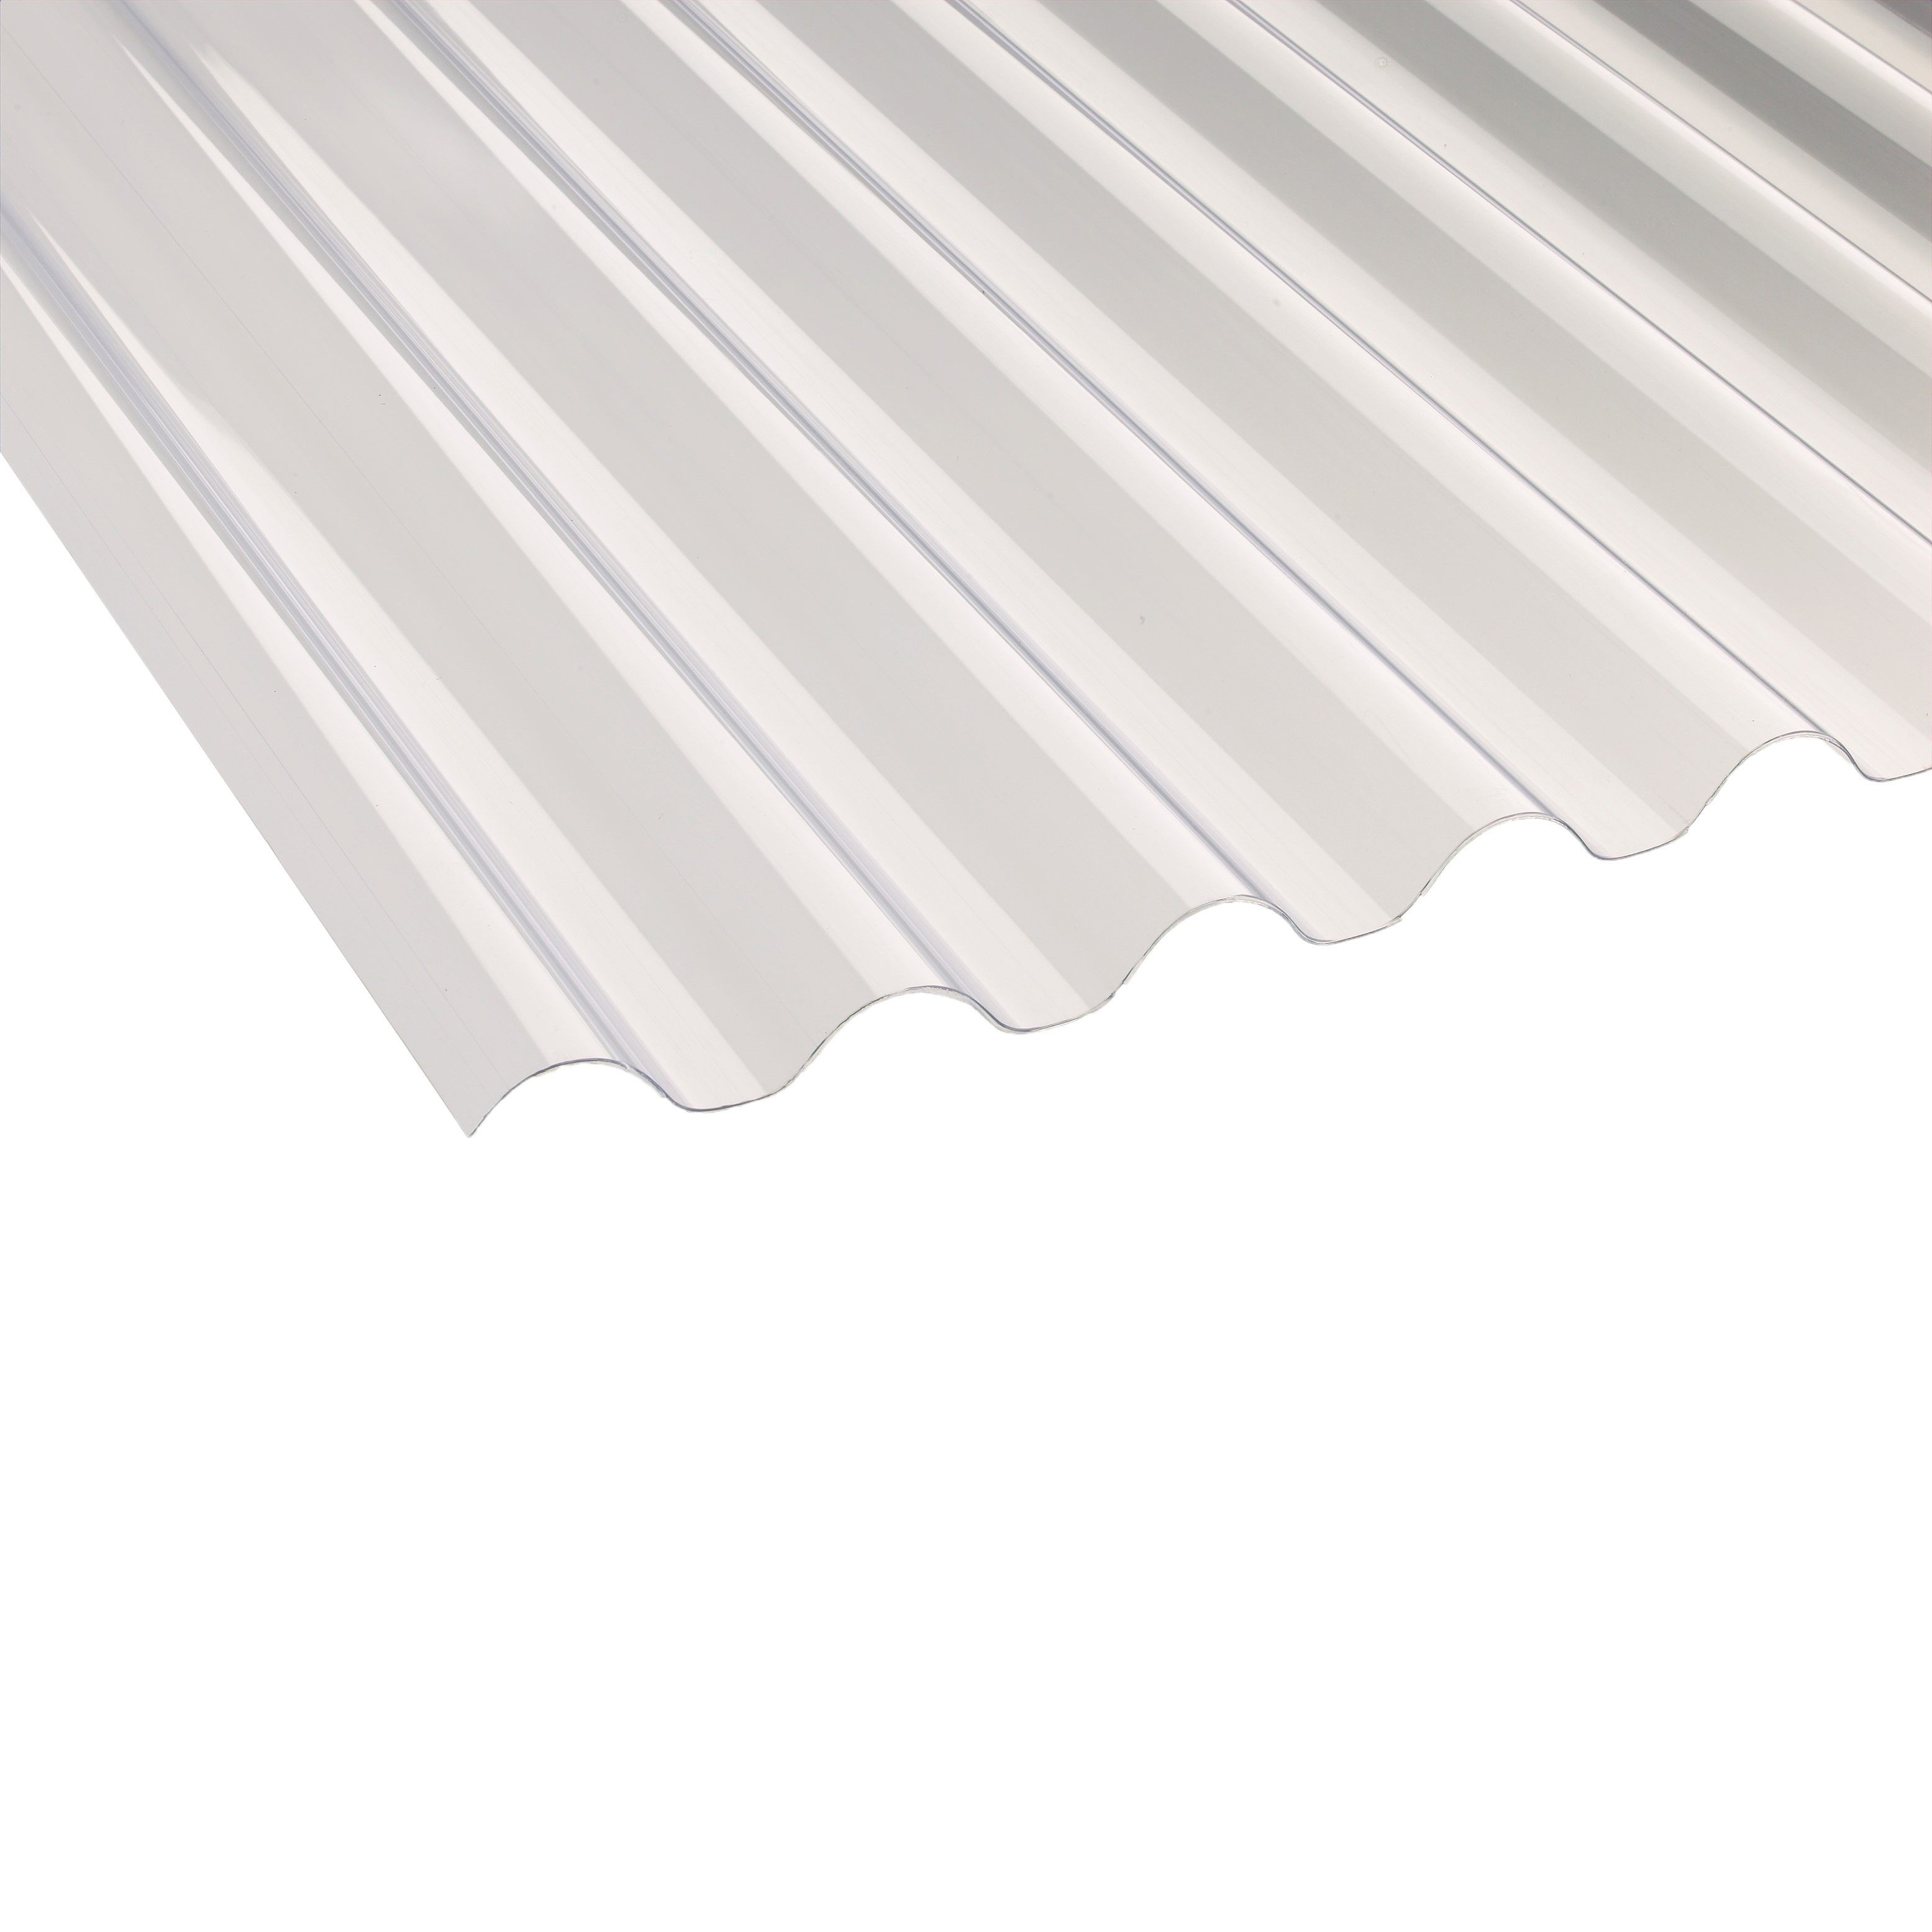 Clear Corrugated Pvc Roofing Sheet 1800mm X 660mm, Pack Of 10